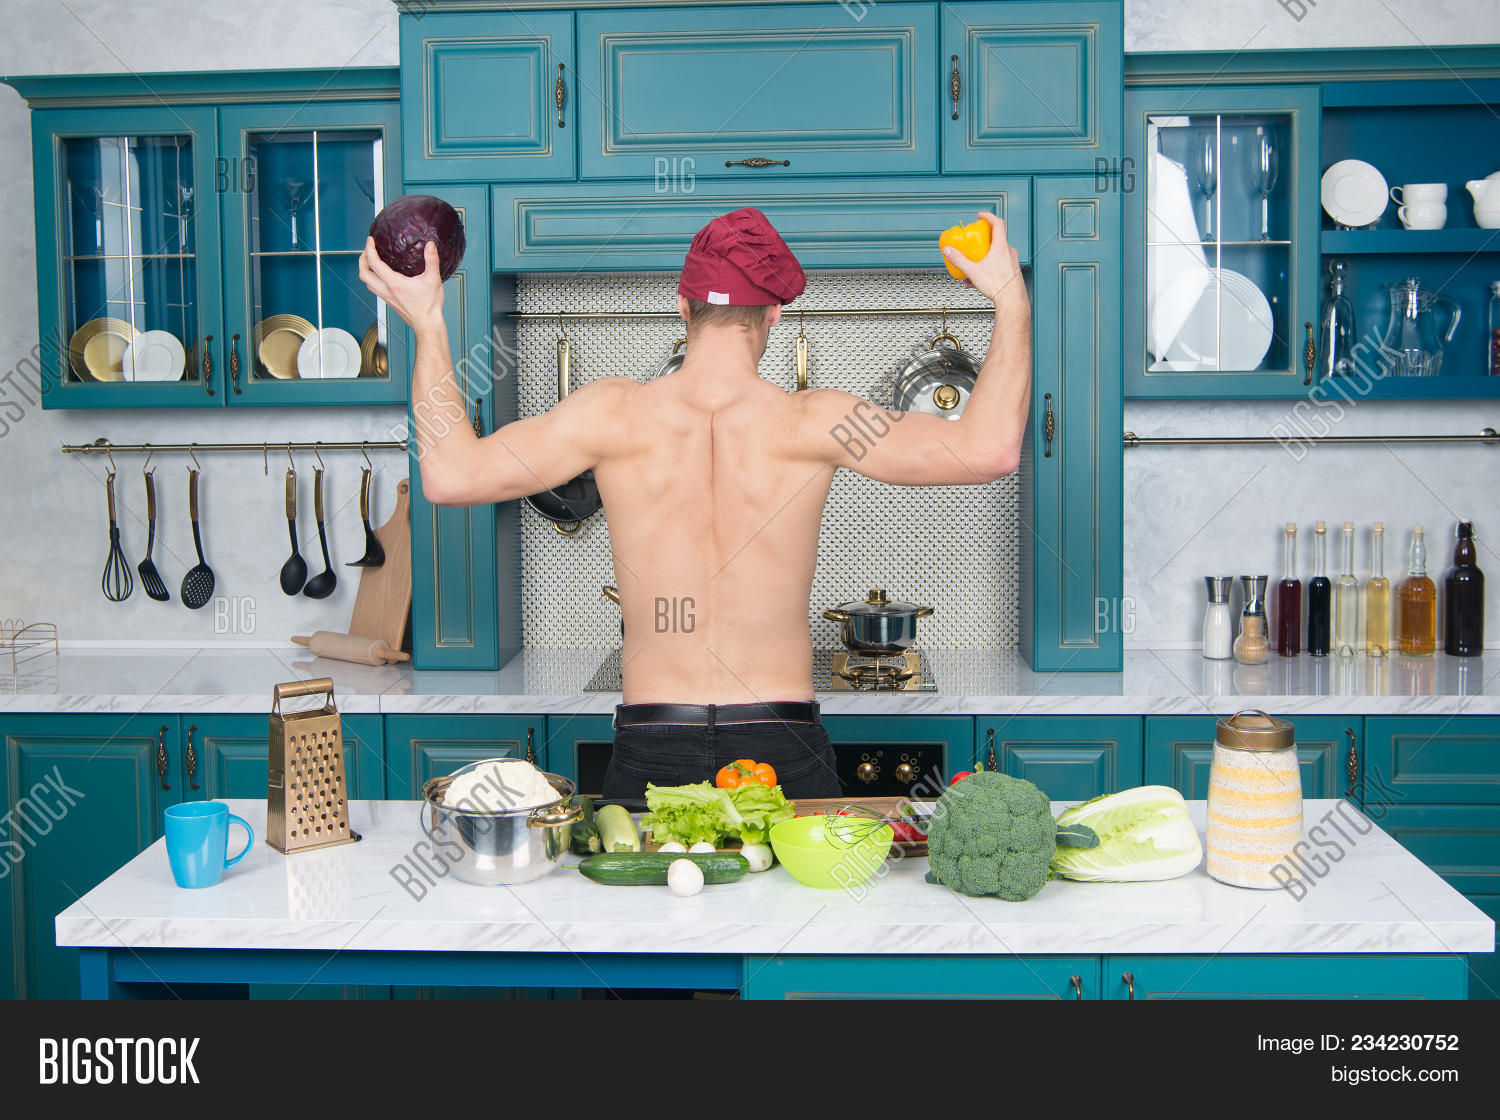 Man Chef Hat Muscular Torso Kitchen Image & Photo | Bigstock